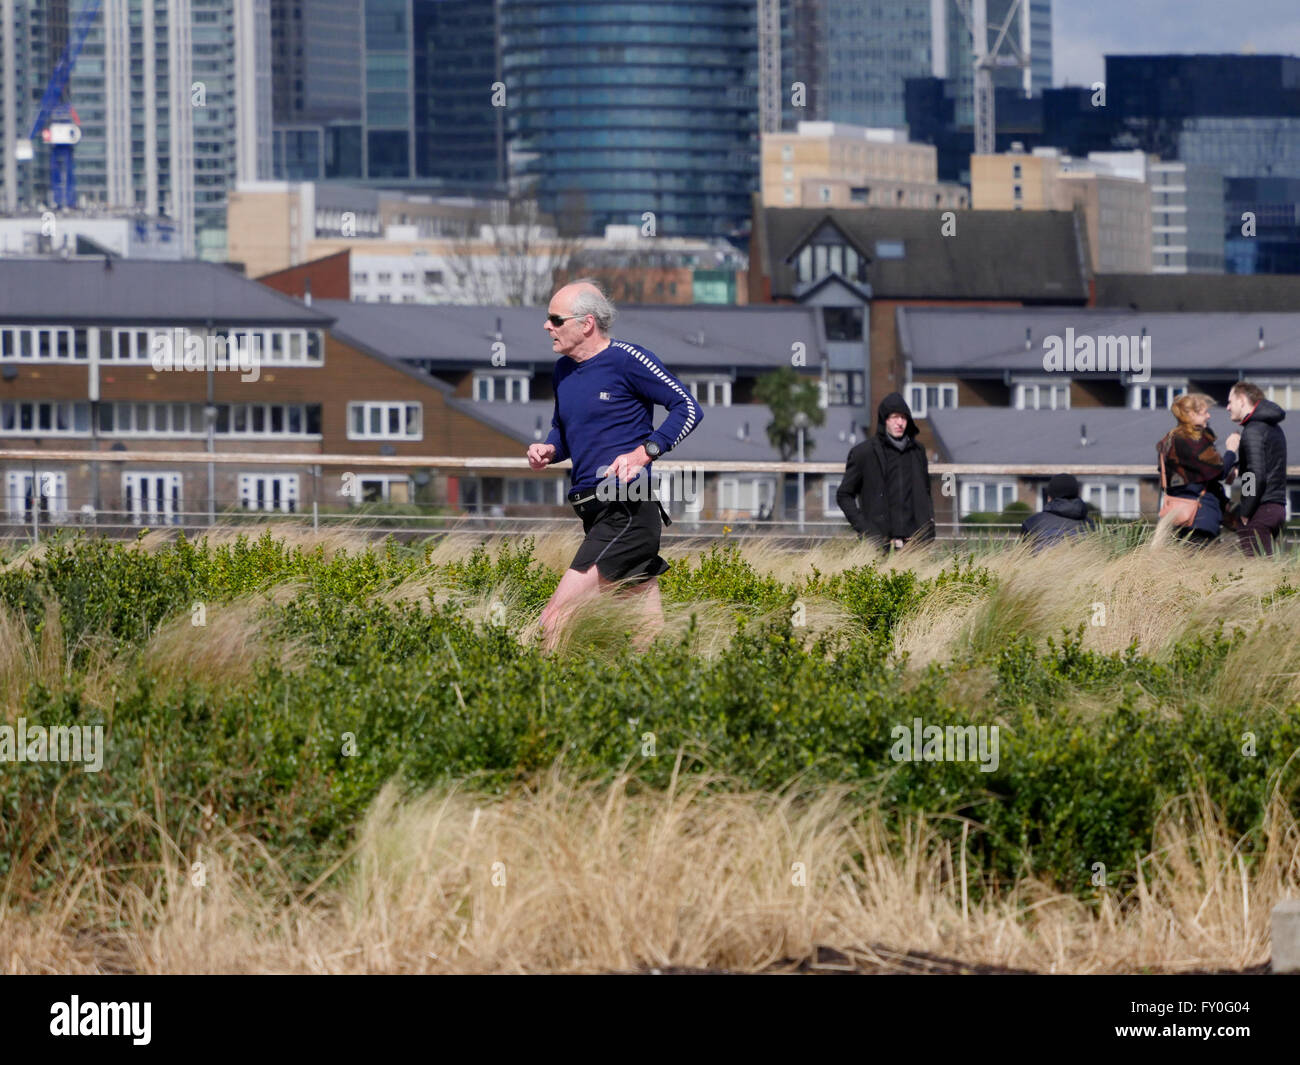 A jogger  in Greenwich London - Stock Image